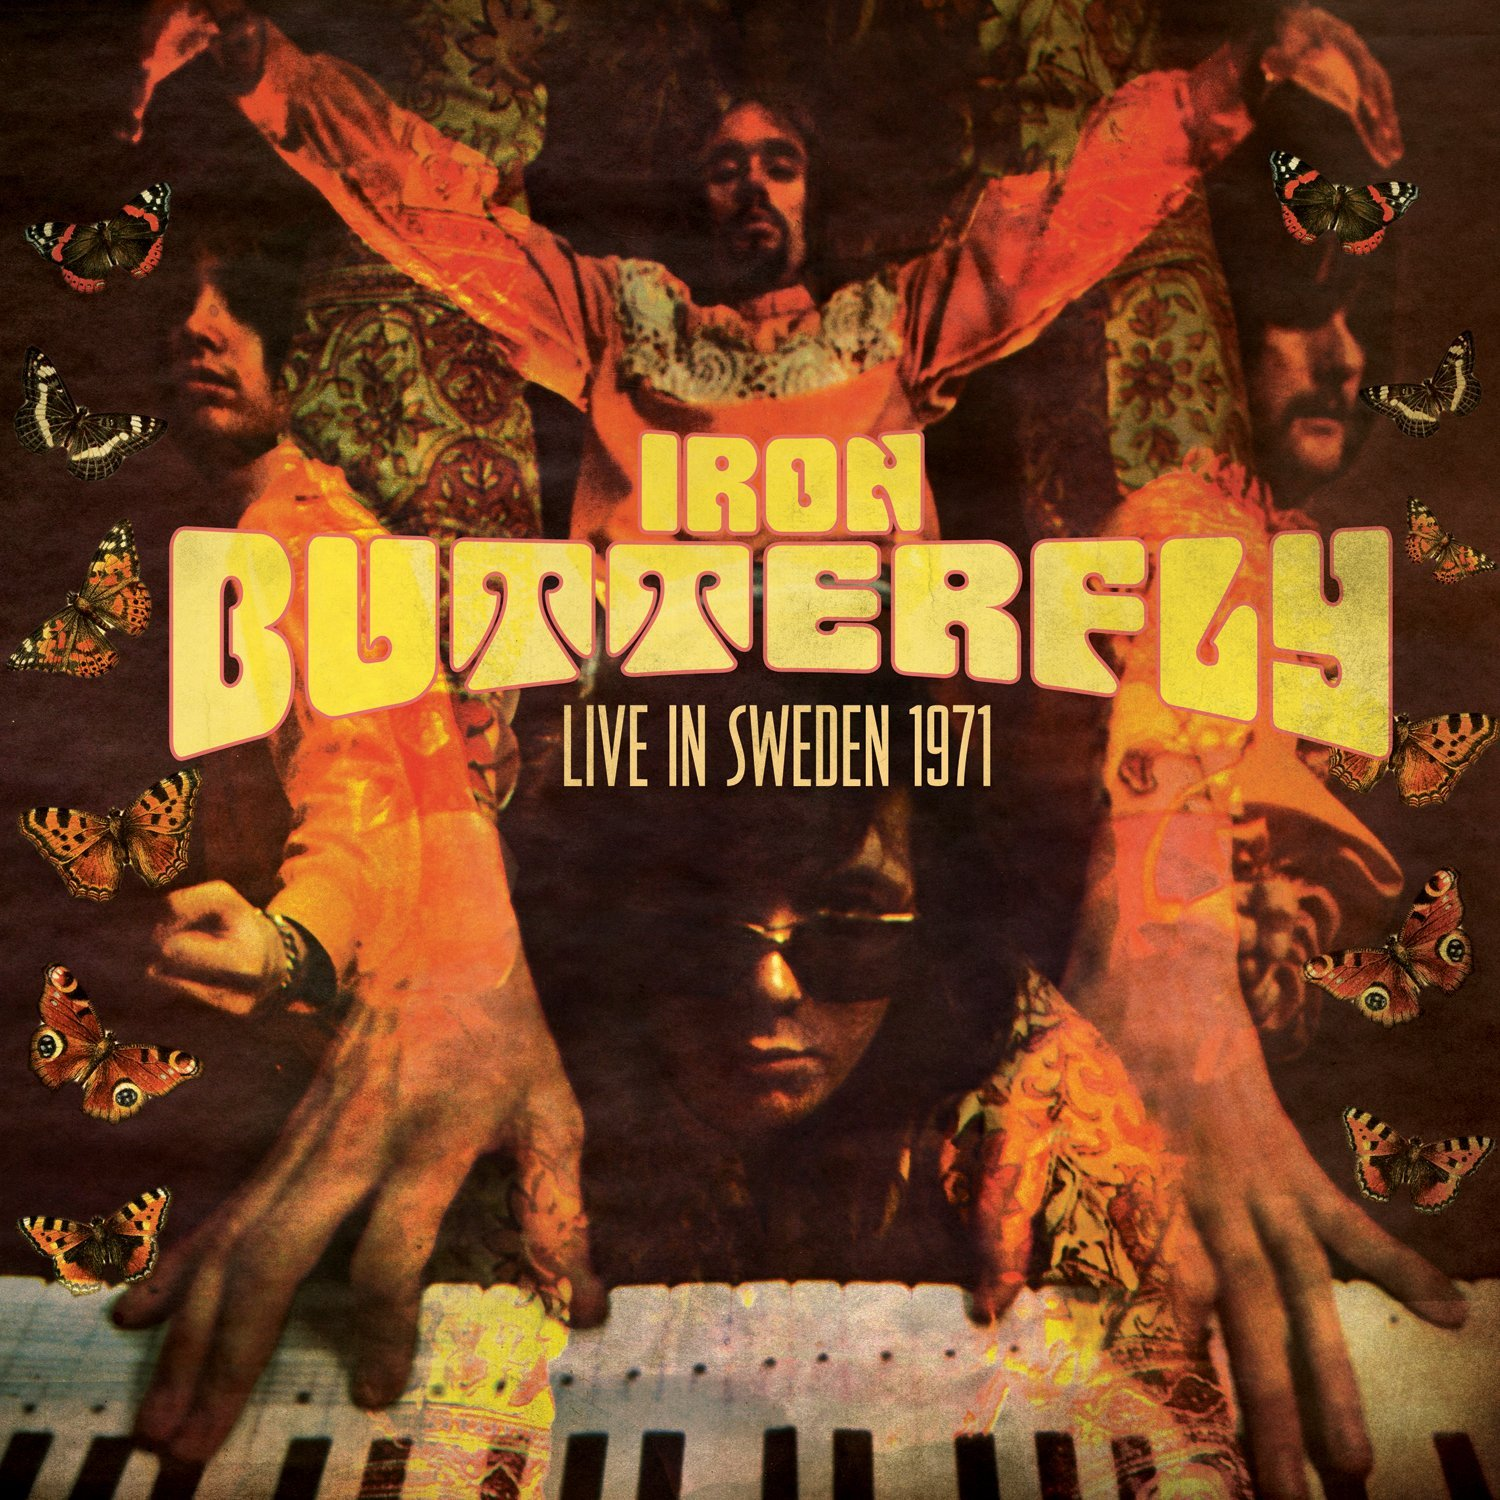 Live in Sweden 1971 Cover art